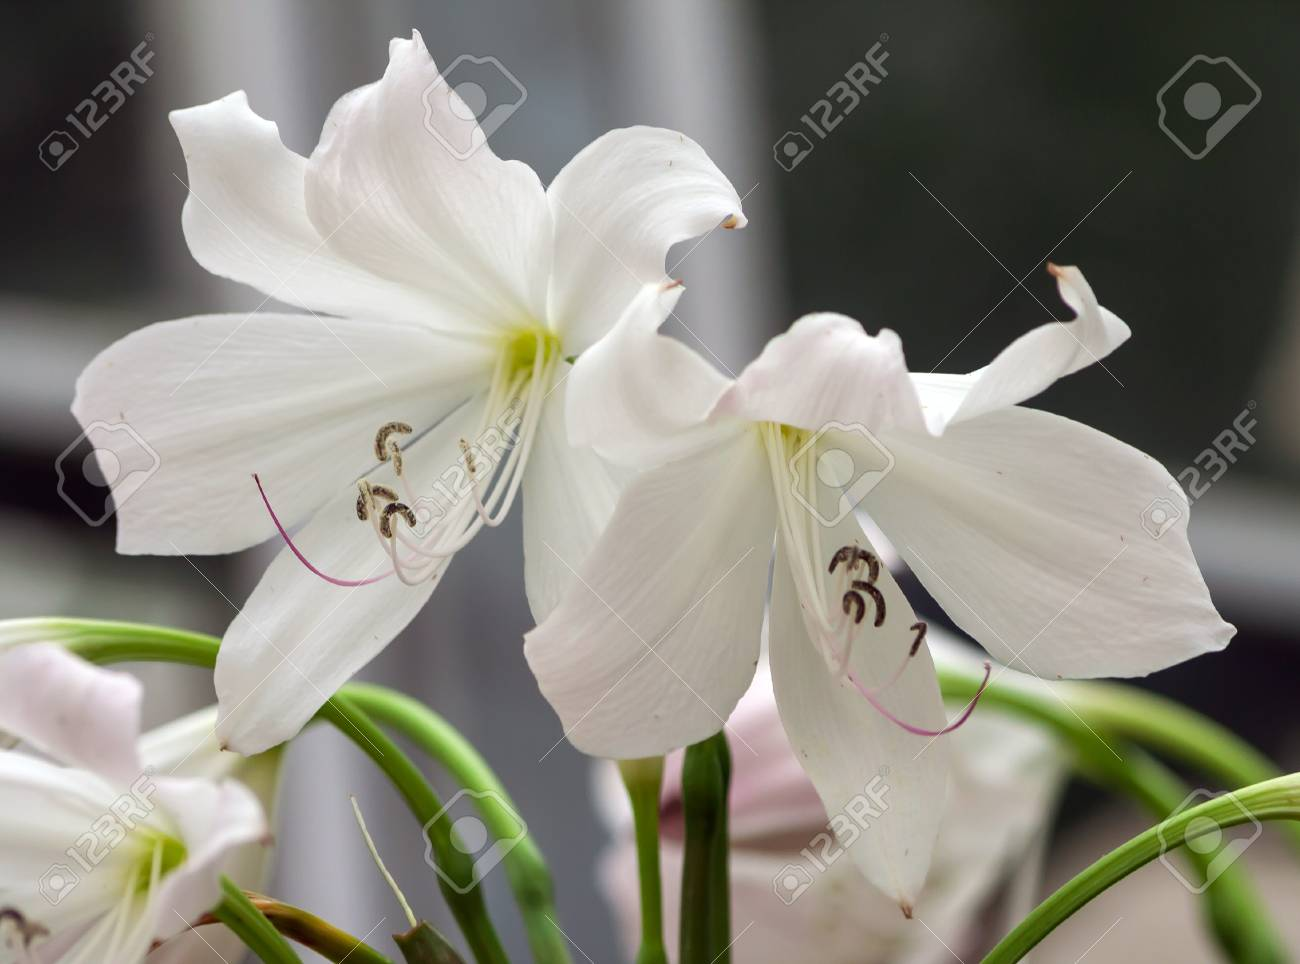 Beautiful Tropical White Flowers Like Lily White Two Flowering